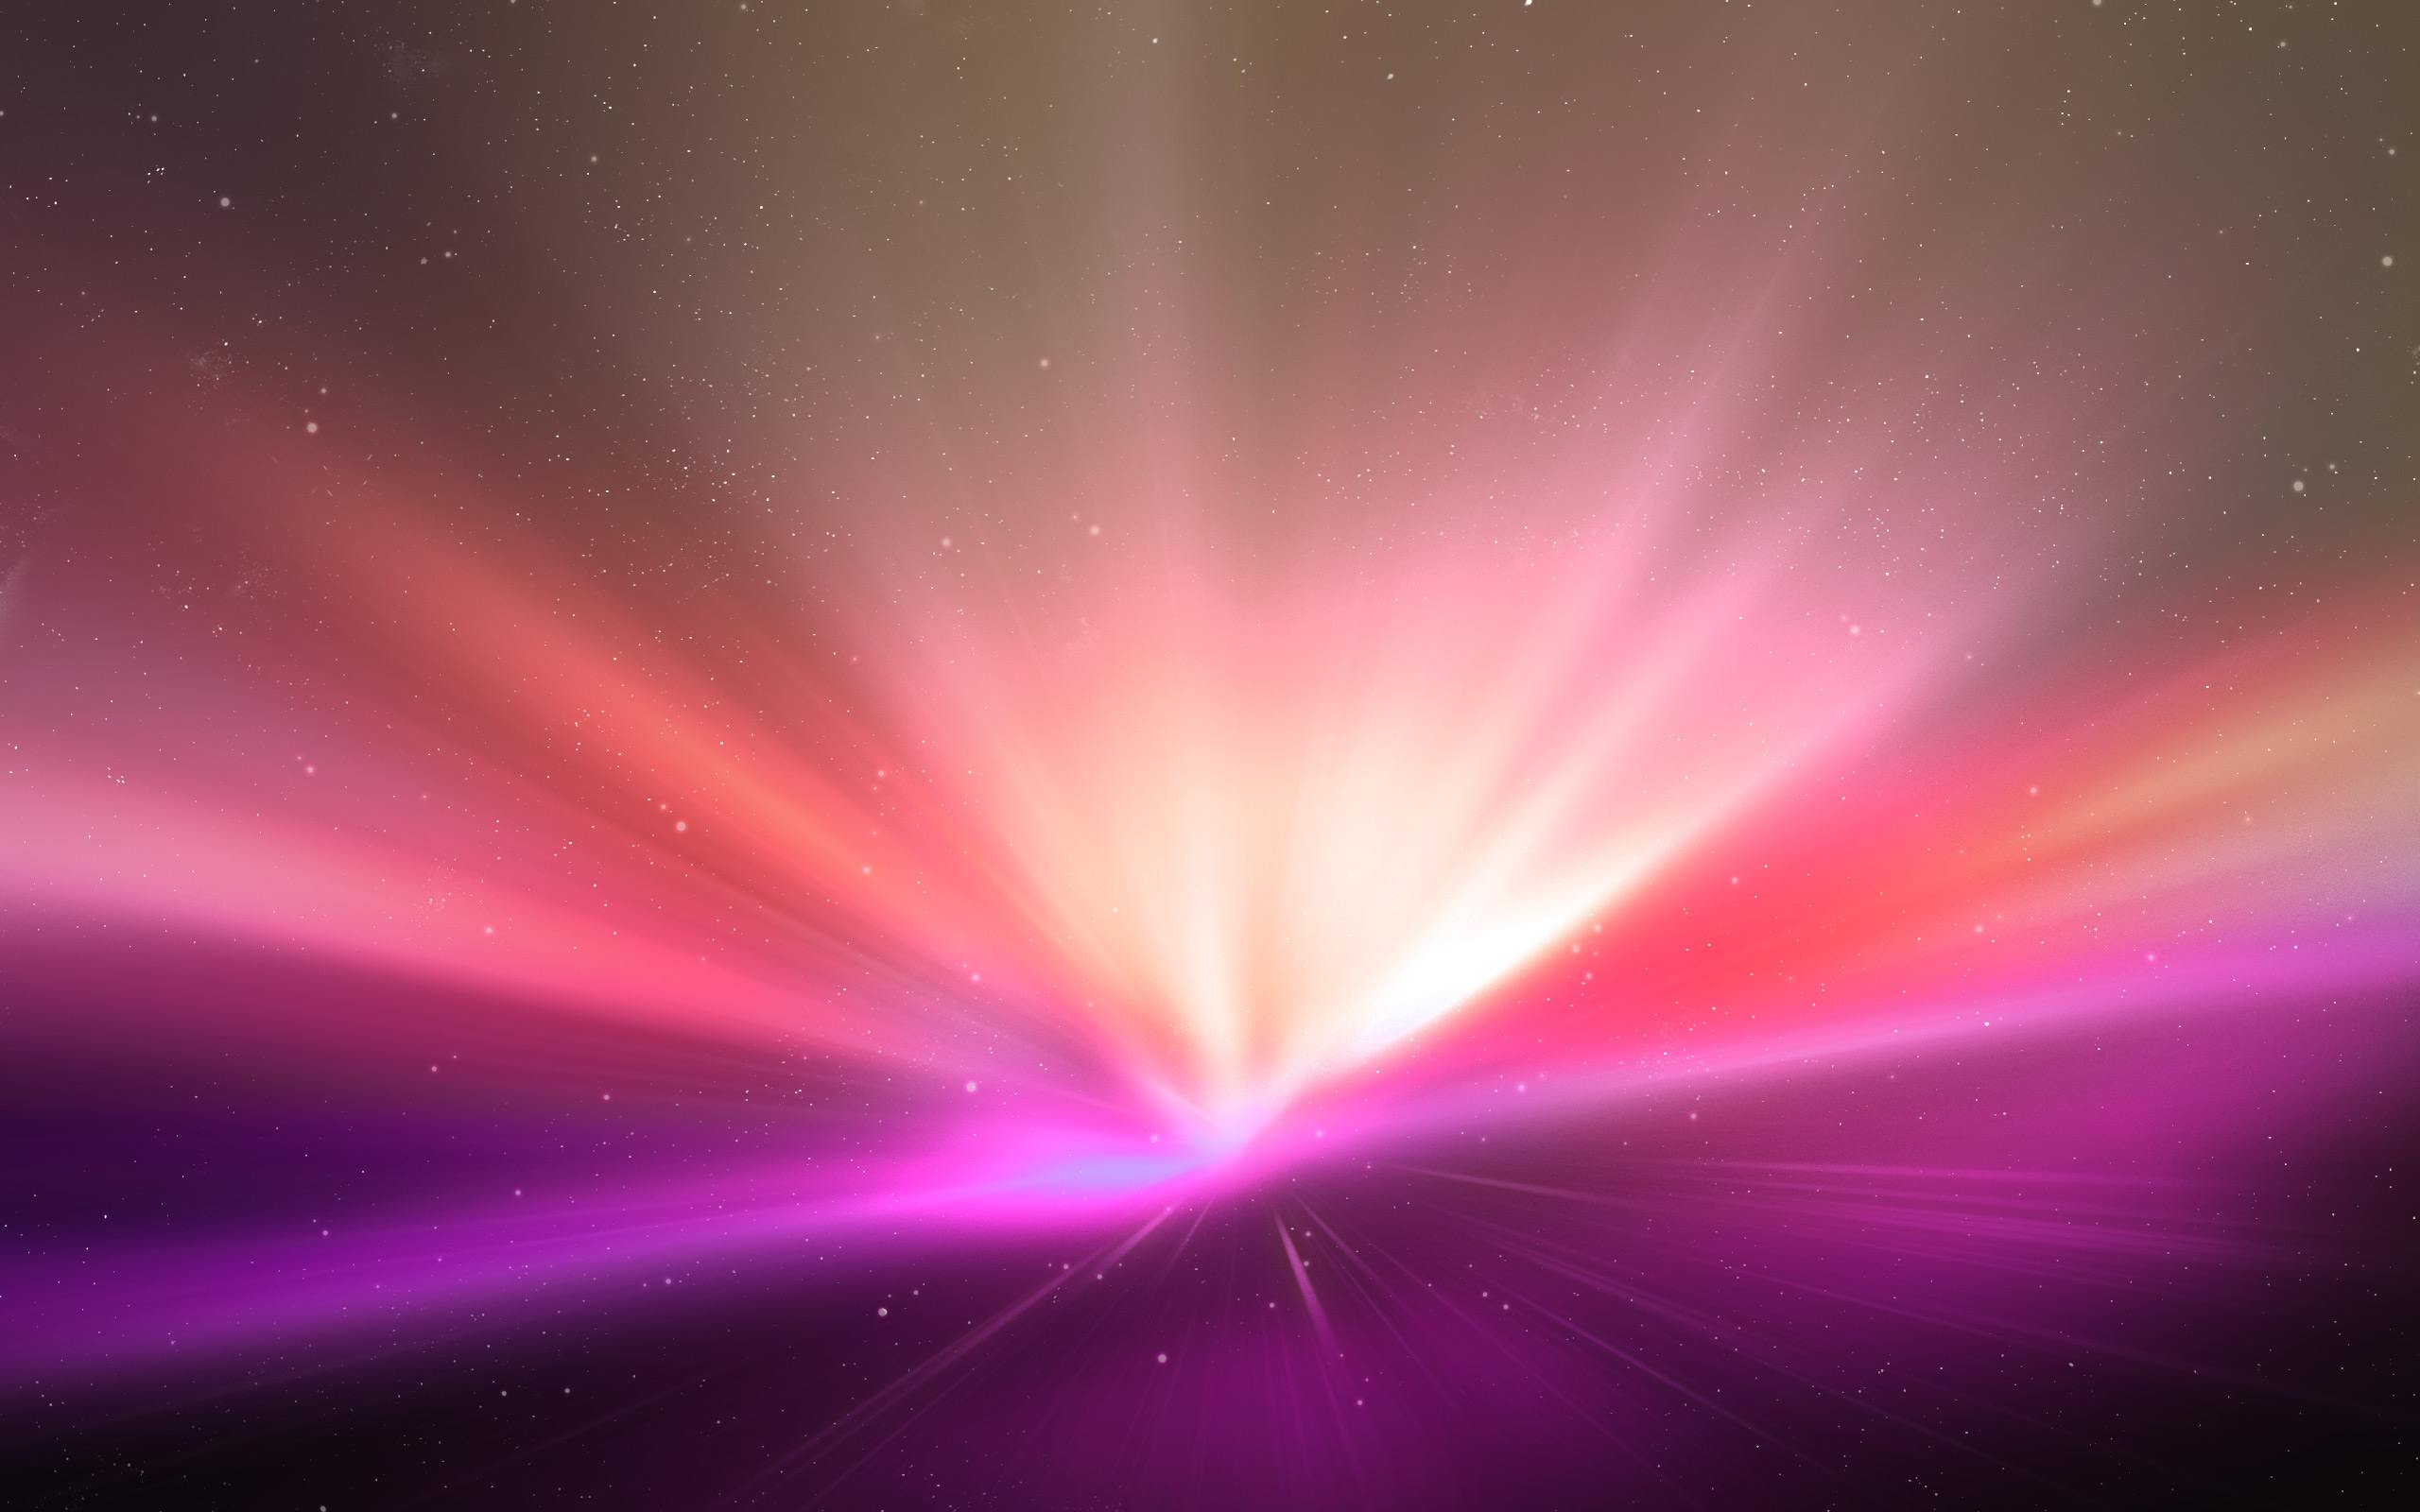 pink-aurora-2560x1600-wallpaper329721